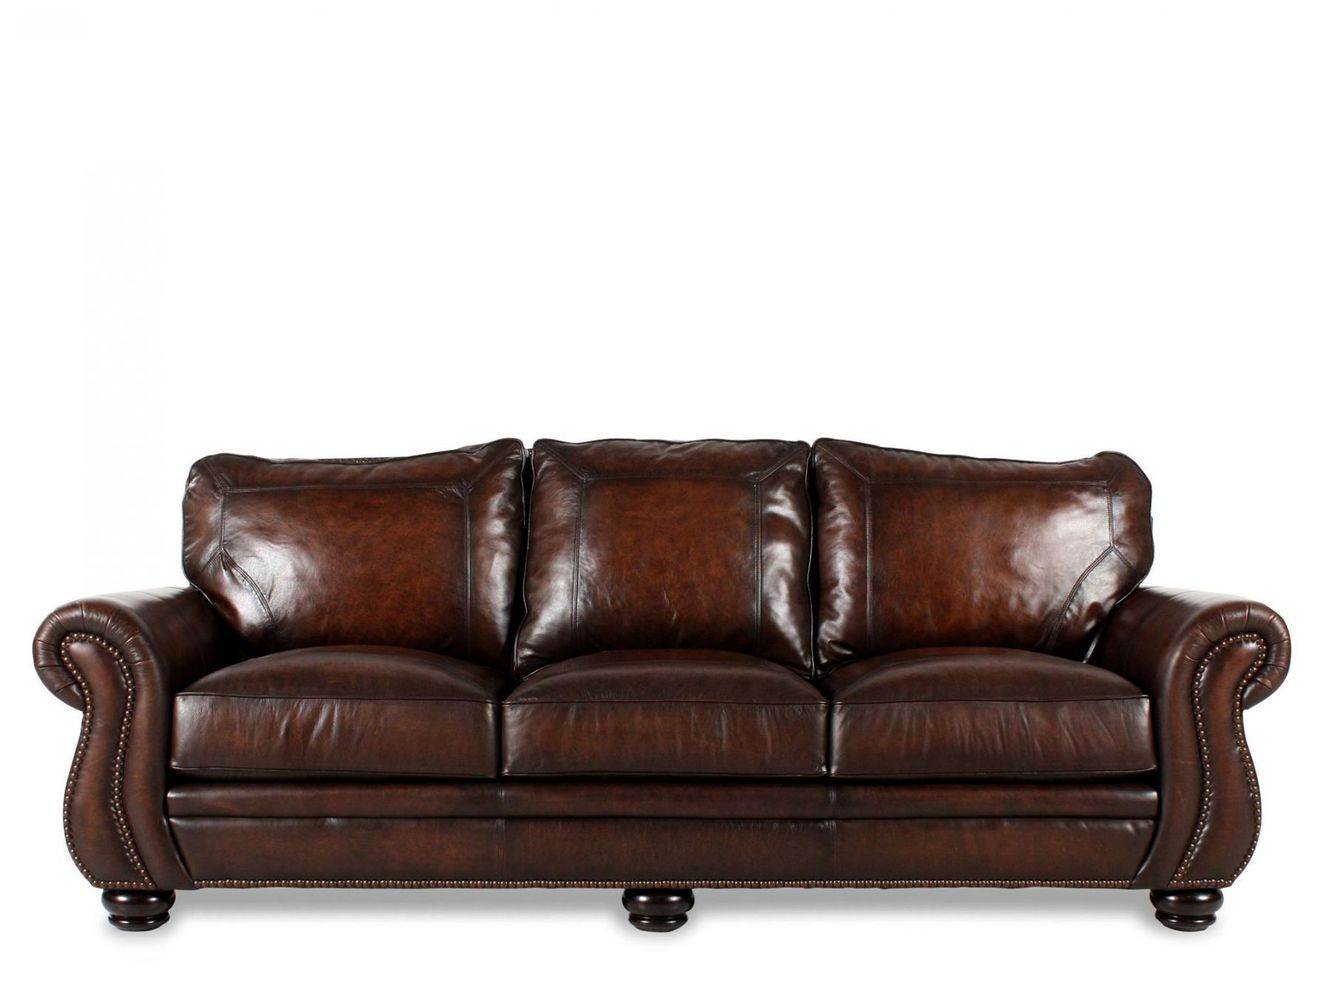 Cool Bernhardt Leather Couch Fancy 96 For Your Living Room Sofa Inspiration